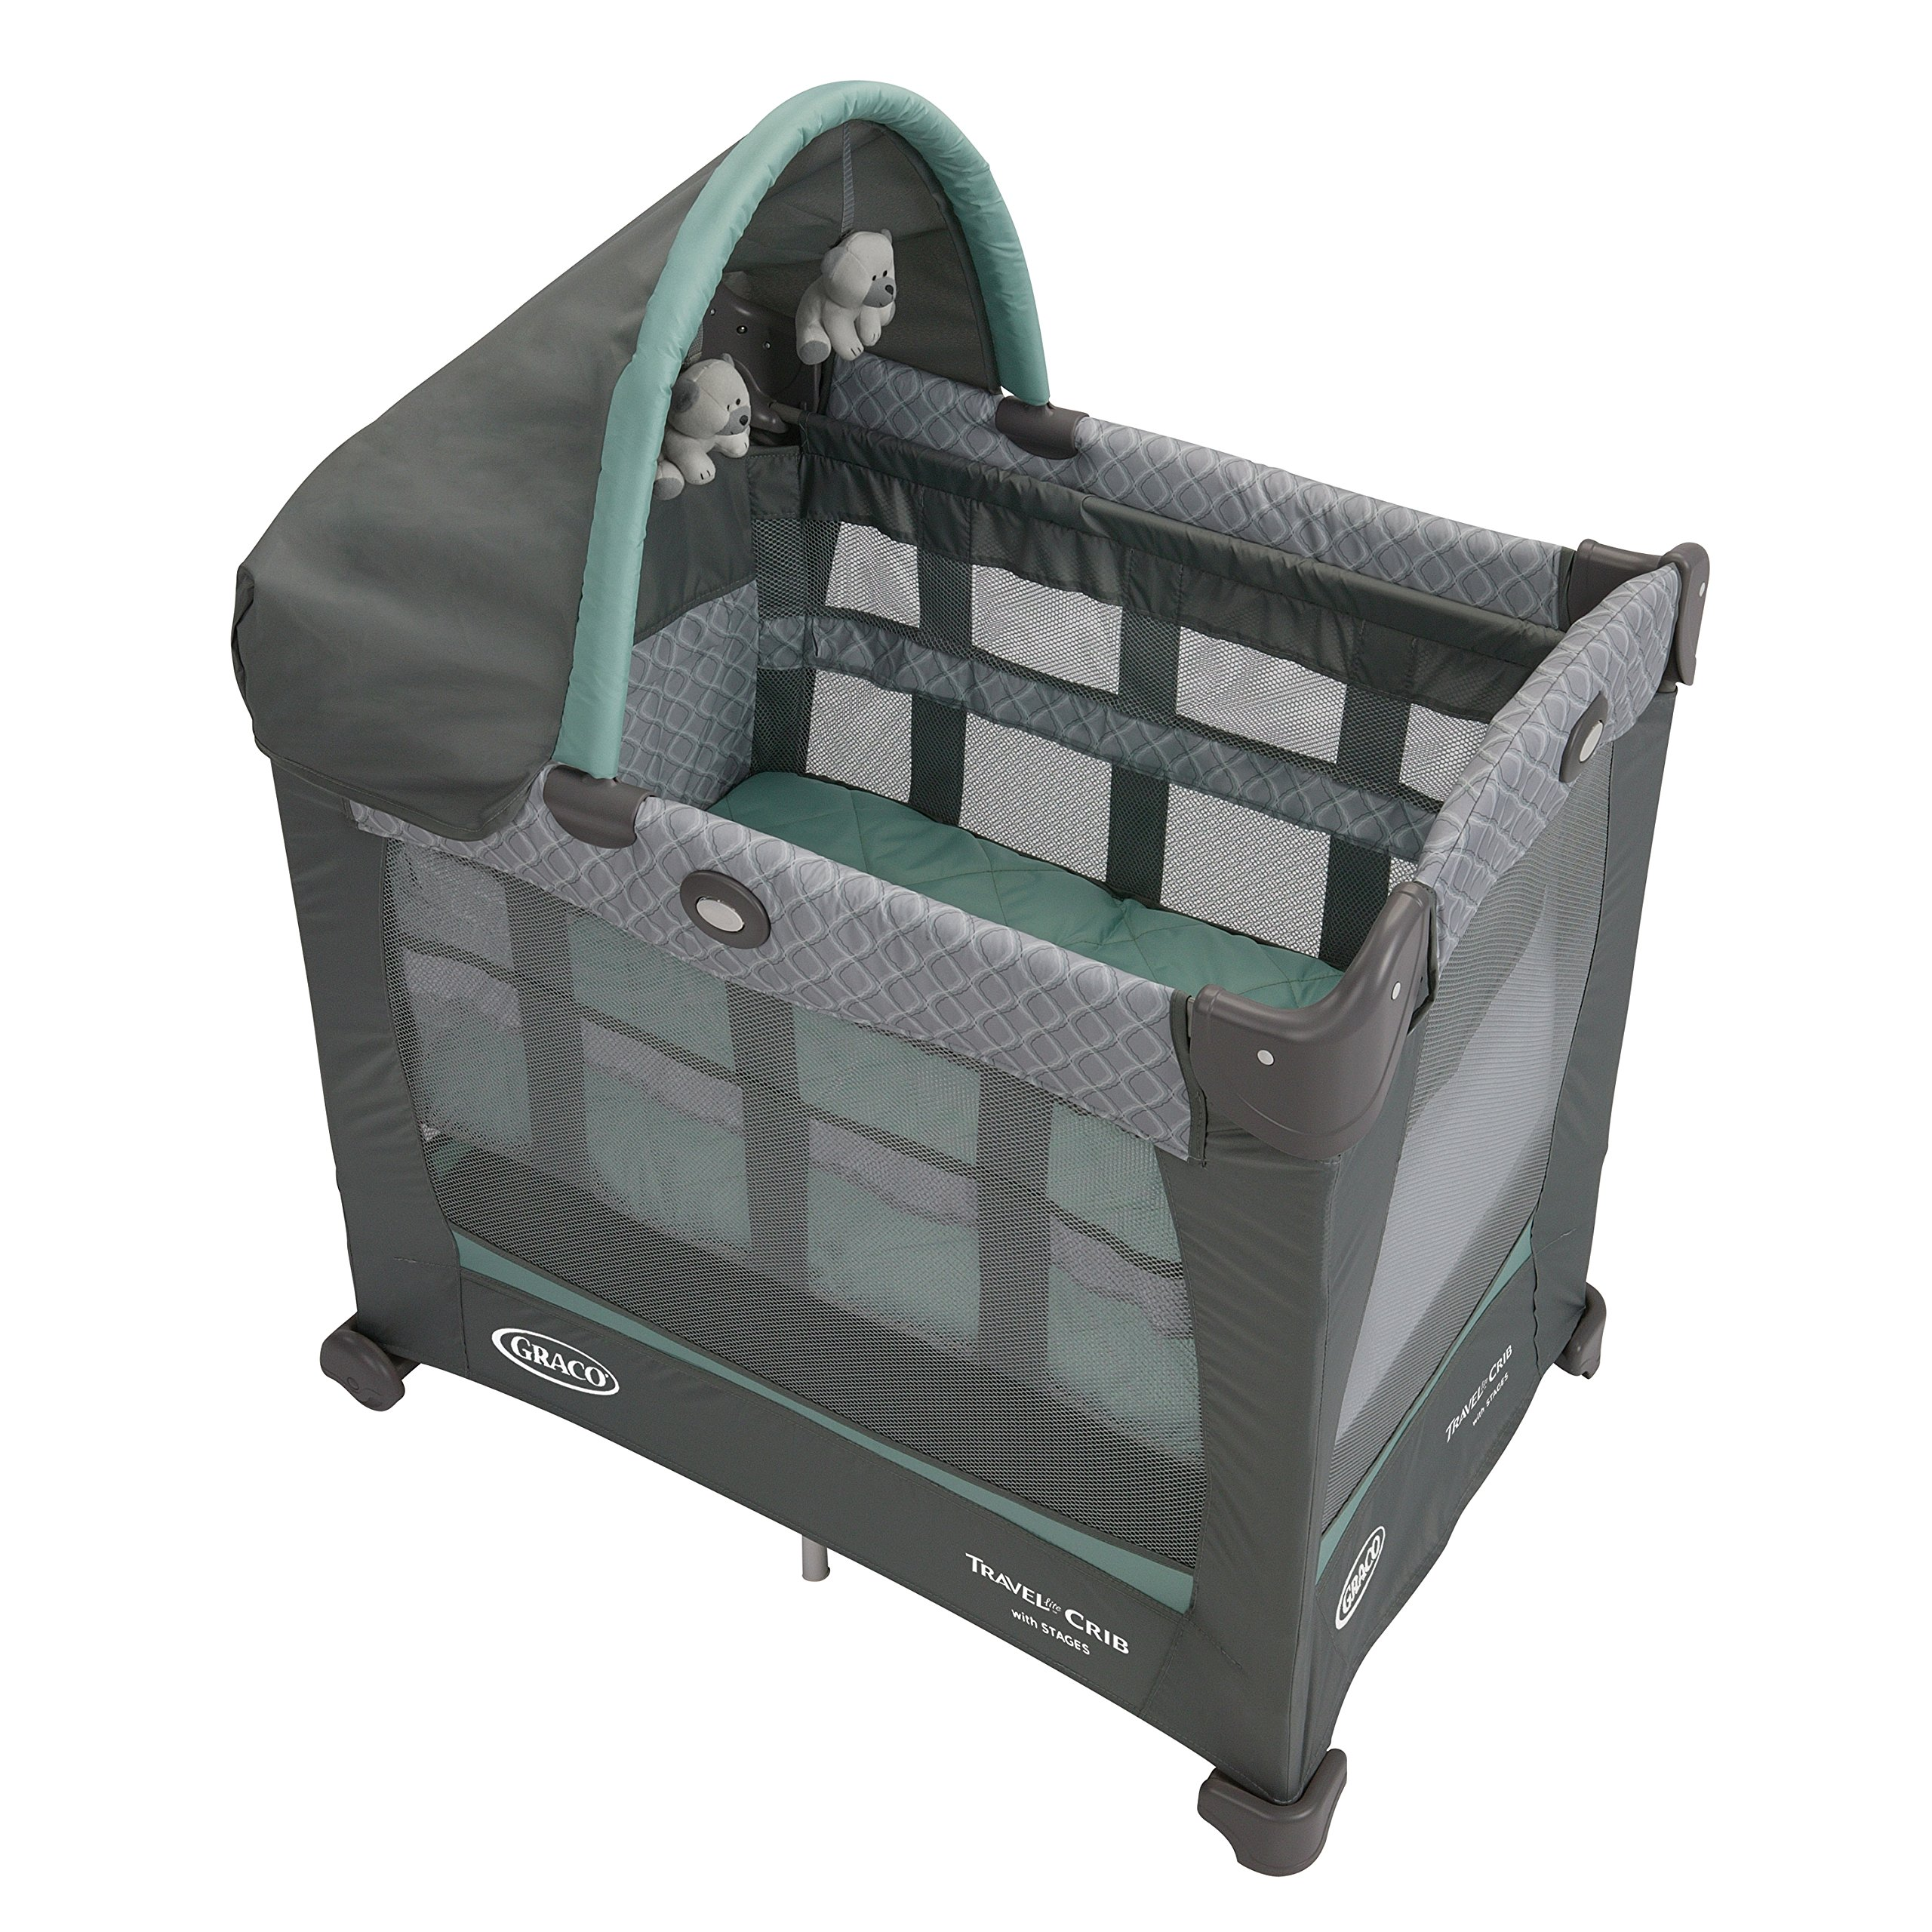 Amazon.com : Graco Travel Lite Crib & Bedroom Bassinet ...